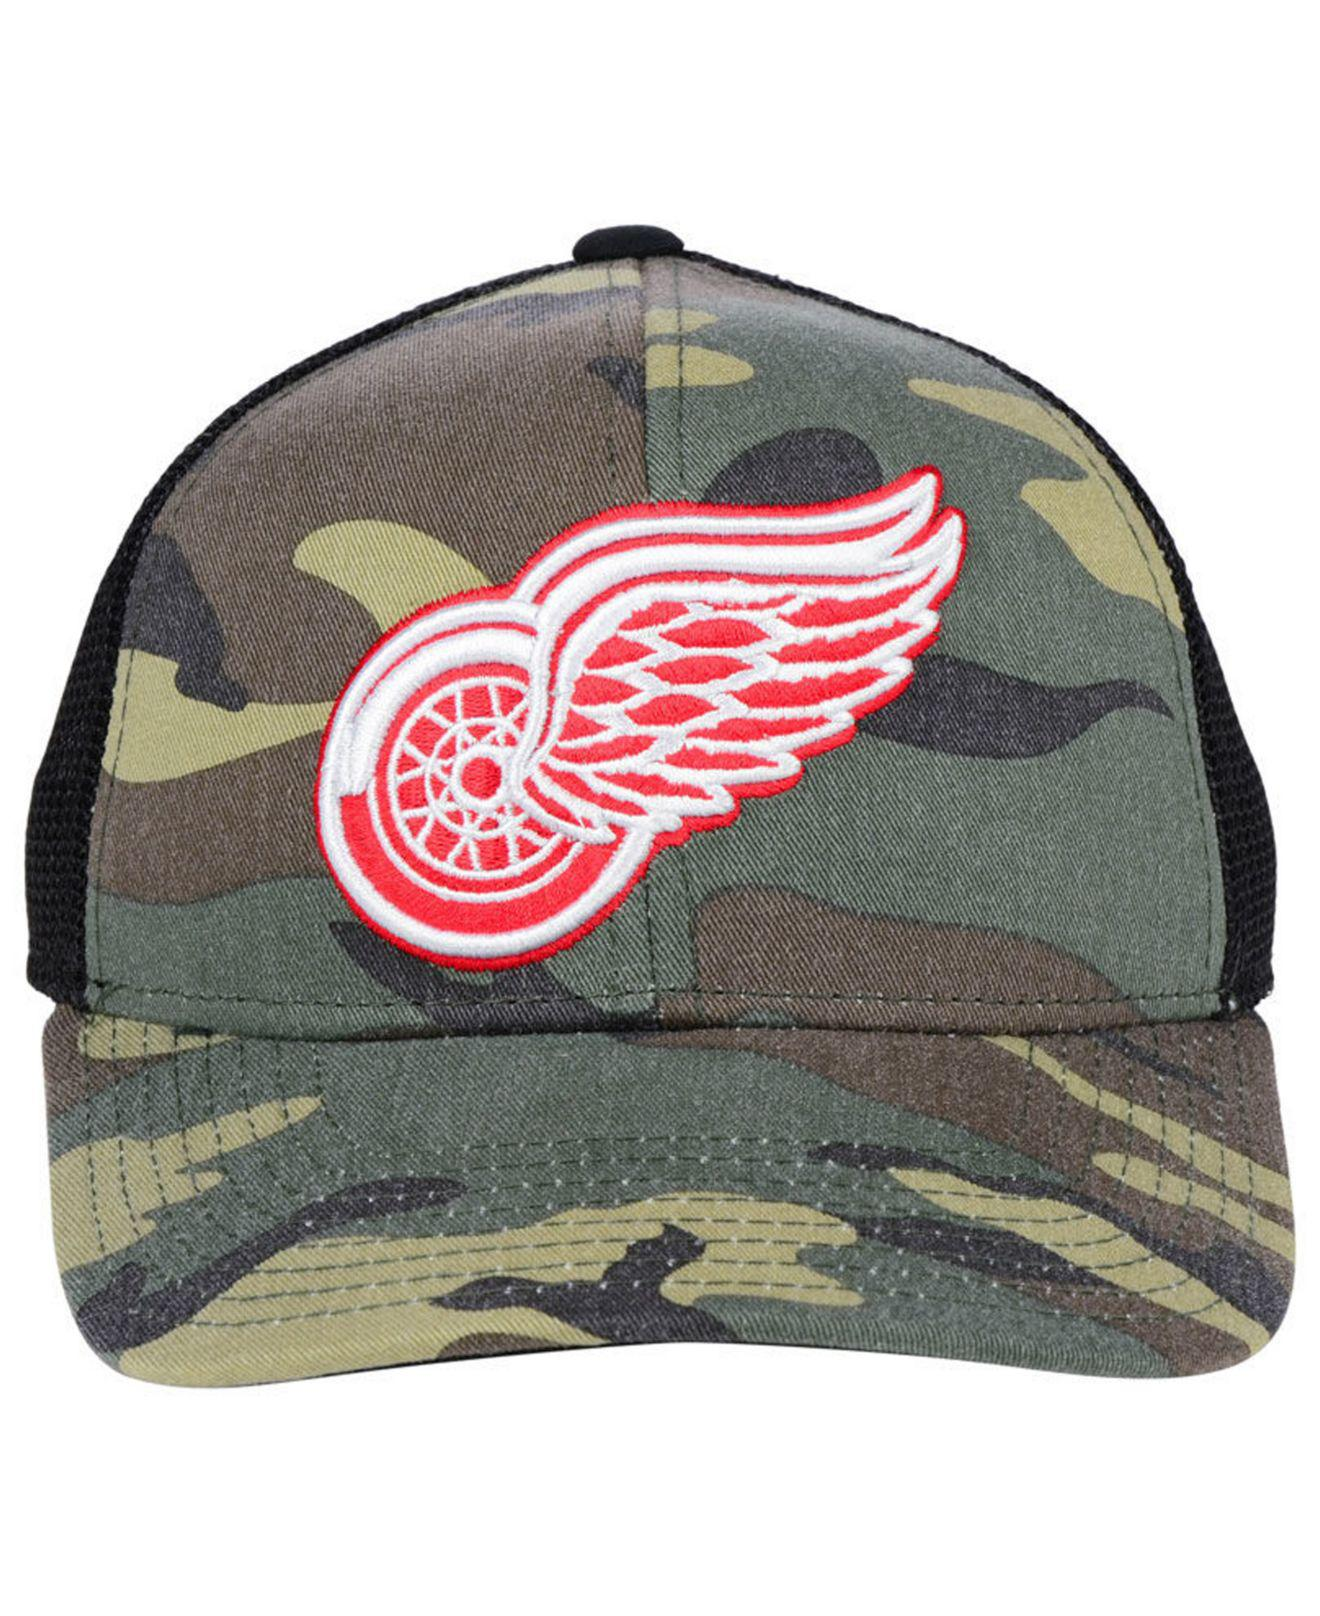 85a736258d3 ... adjustable hat cb036 a97a4  sale lyst adidas detroit red wings camo  trucker cap for men ad5e4 df6bf